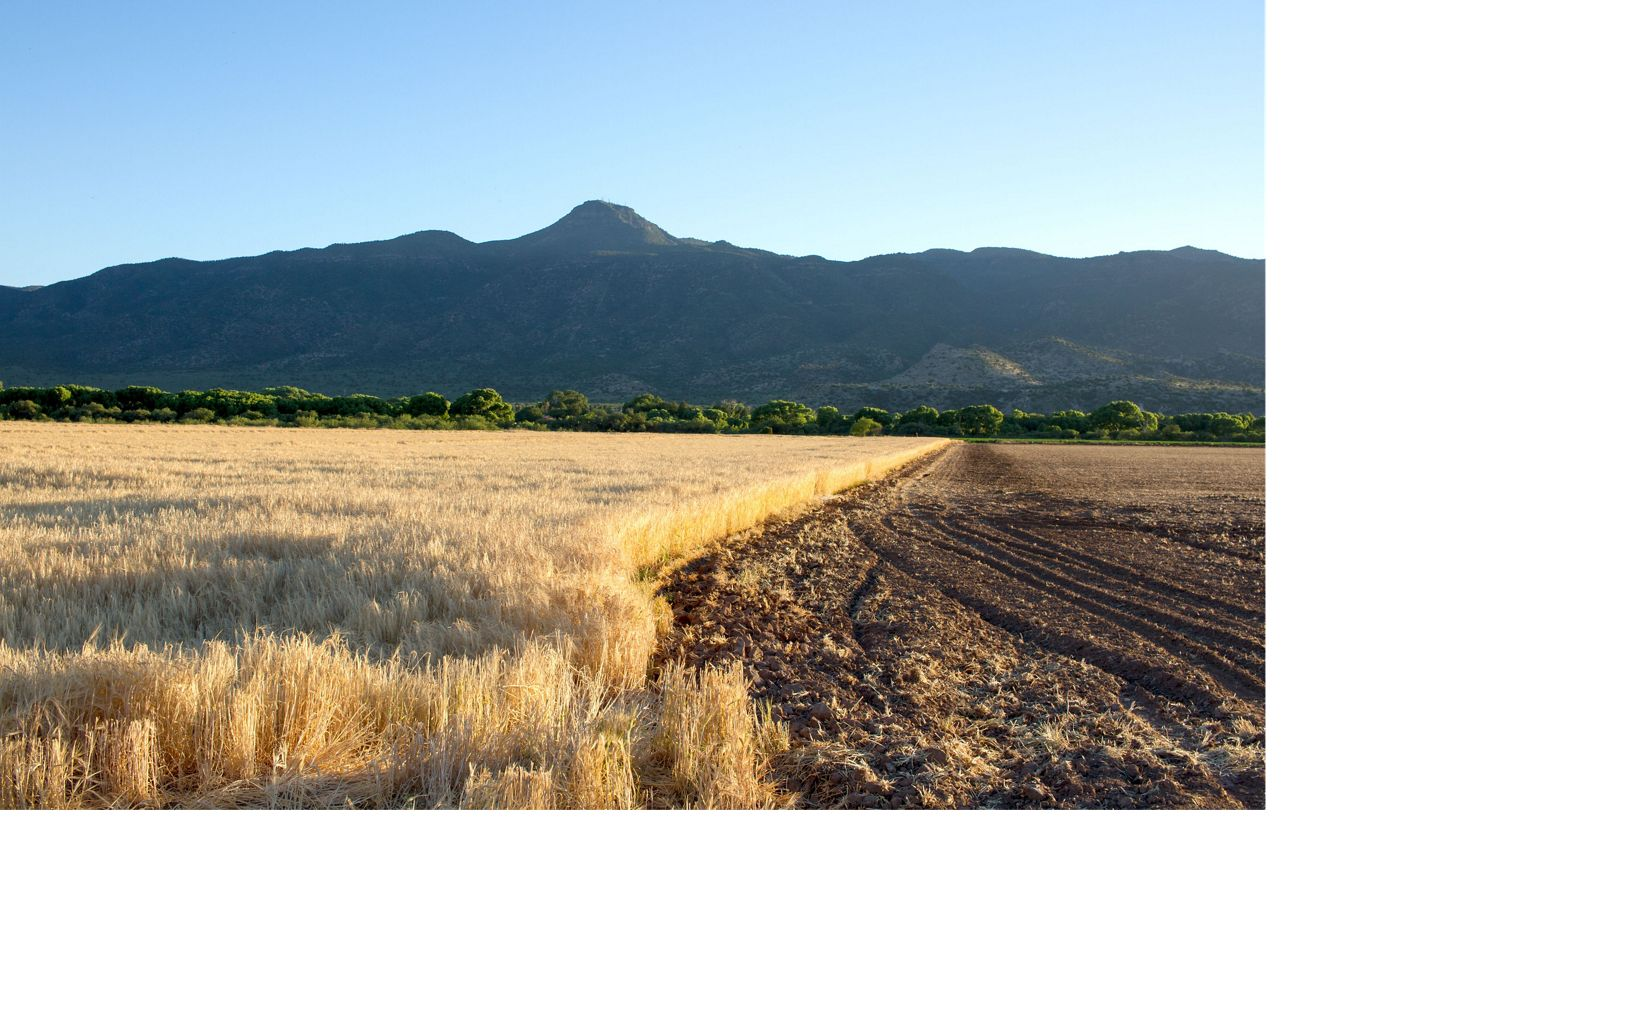 Barley being grown at the Shield Ranch in Arizona to be malted at Sinagua Malt in the town of Camp Verde.